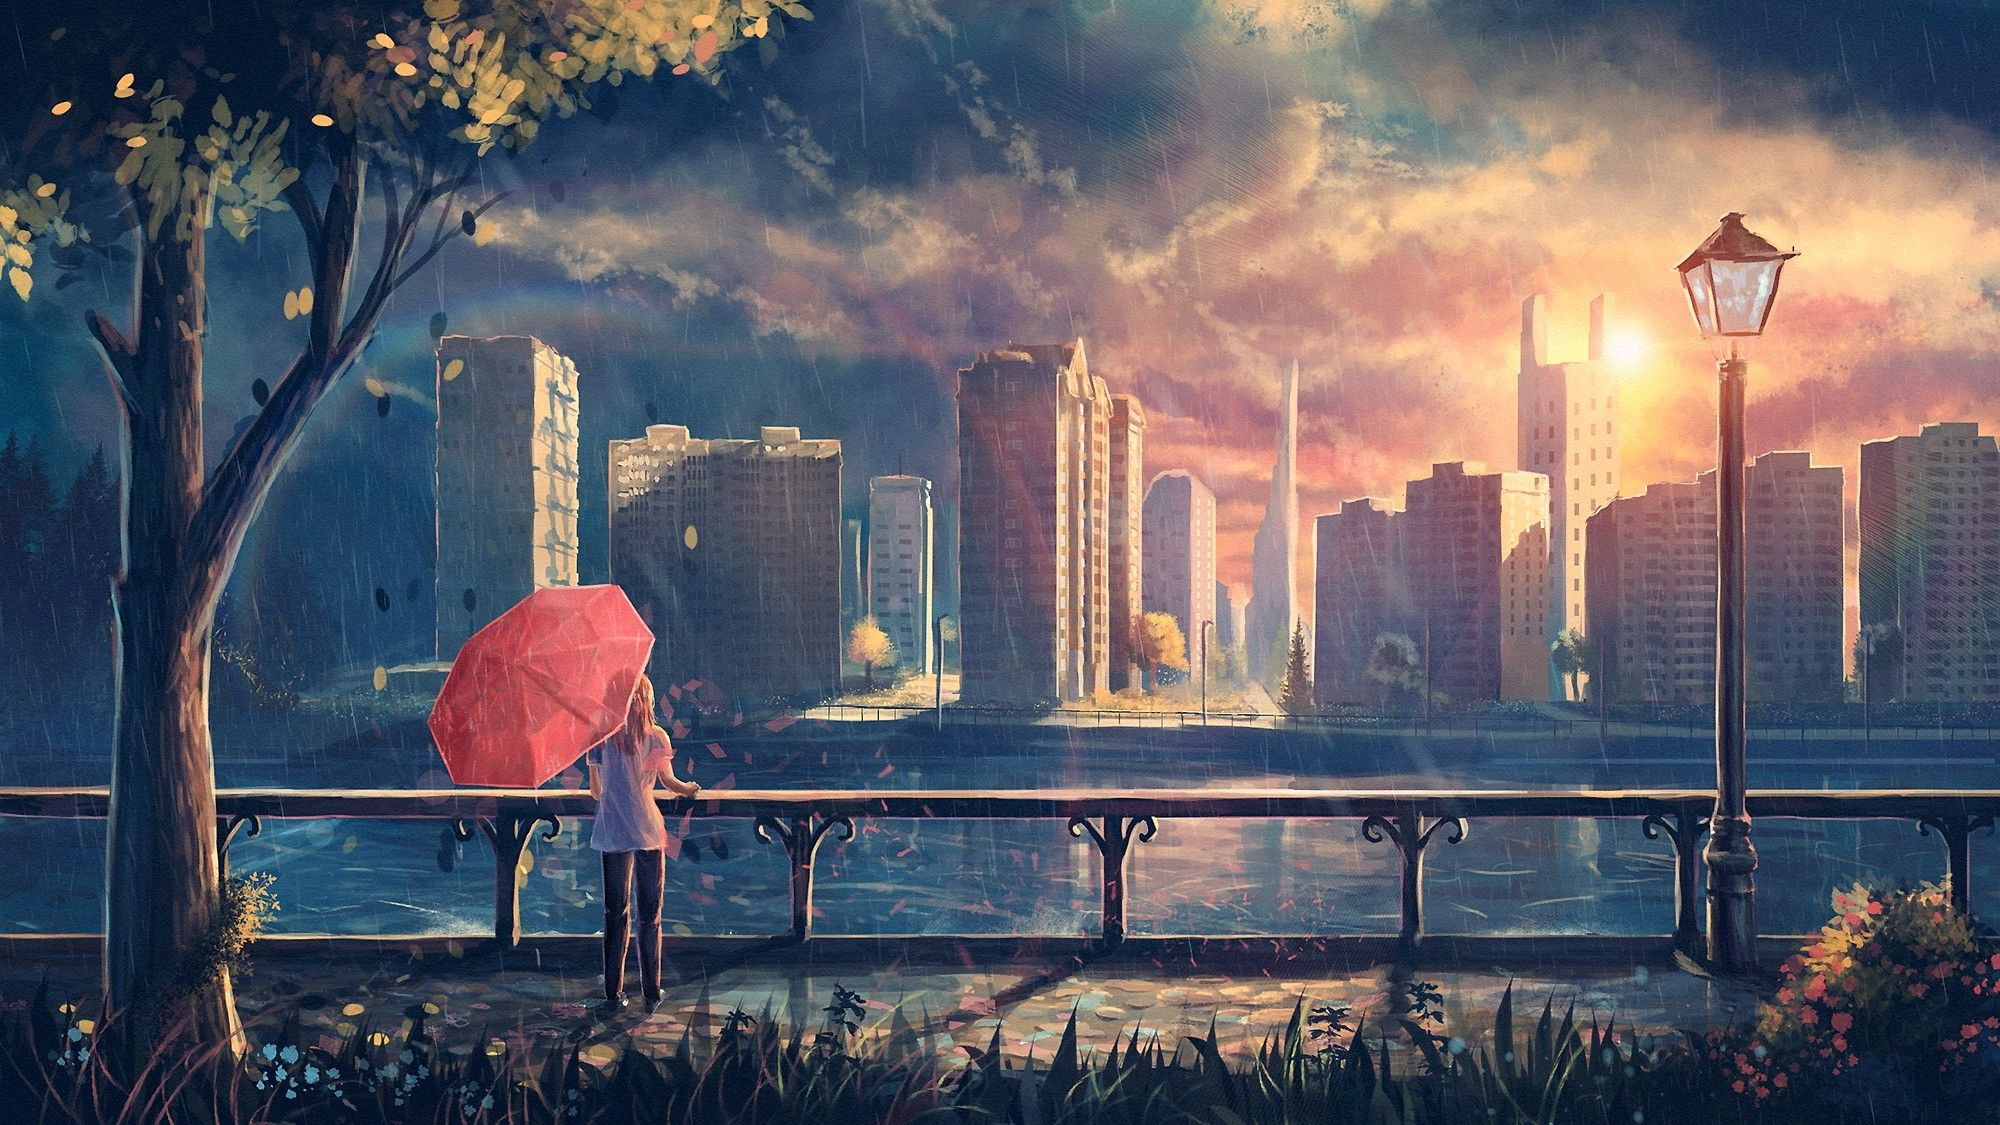 Chill Anime Wallpapers - Top Free Chill Anime Backgrounds ...